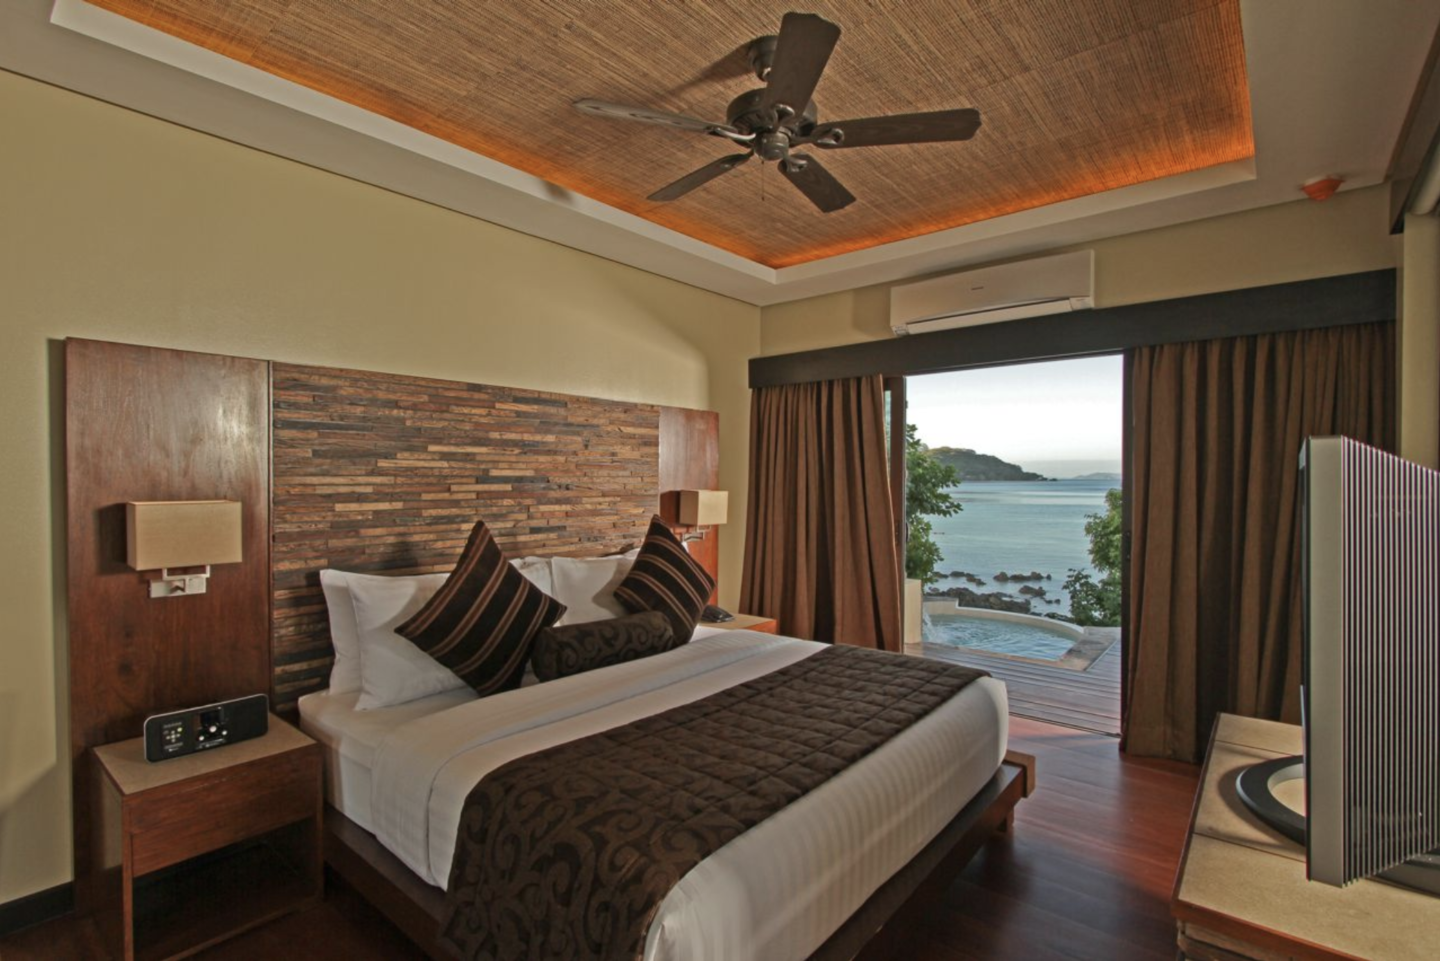 room at two seasons island resort in coron